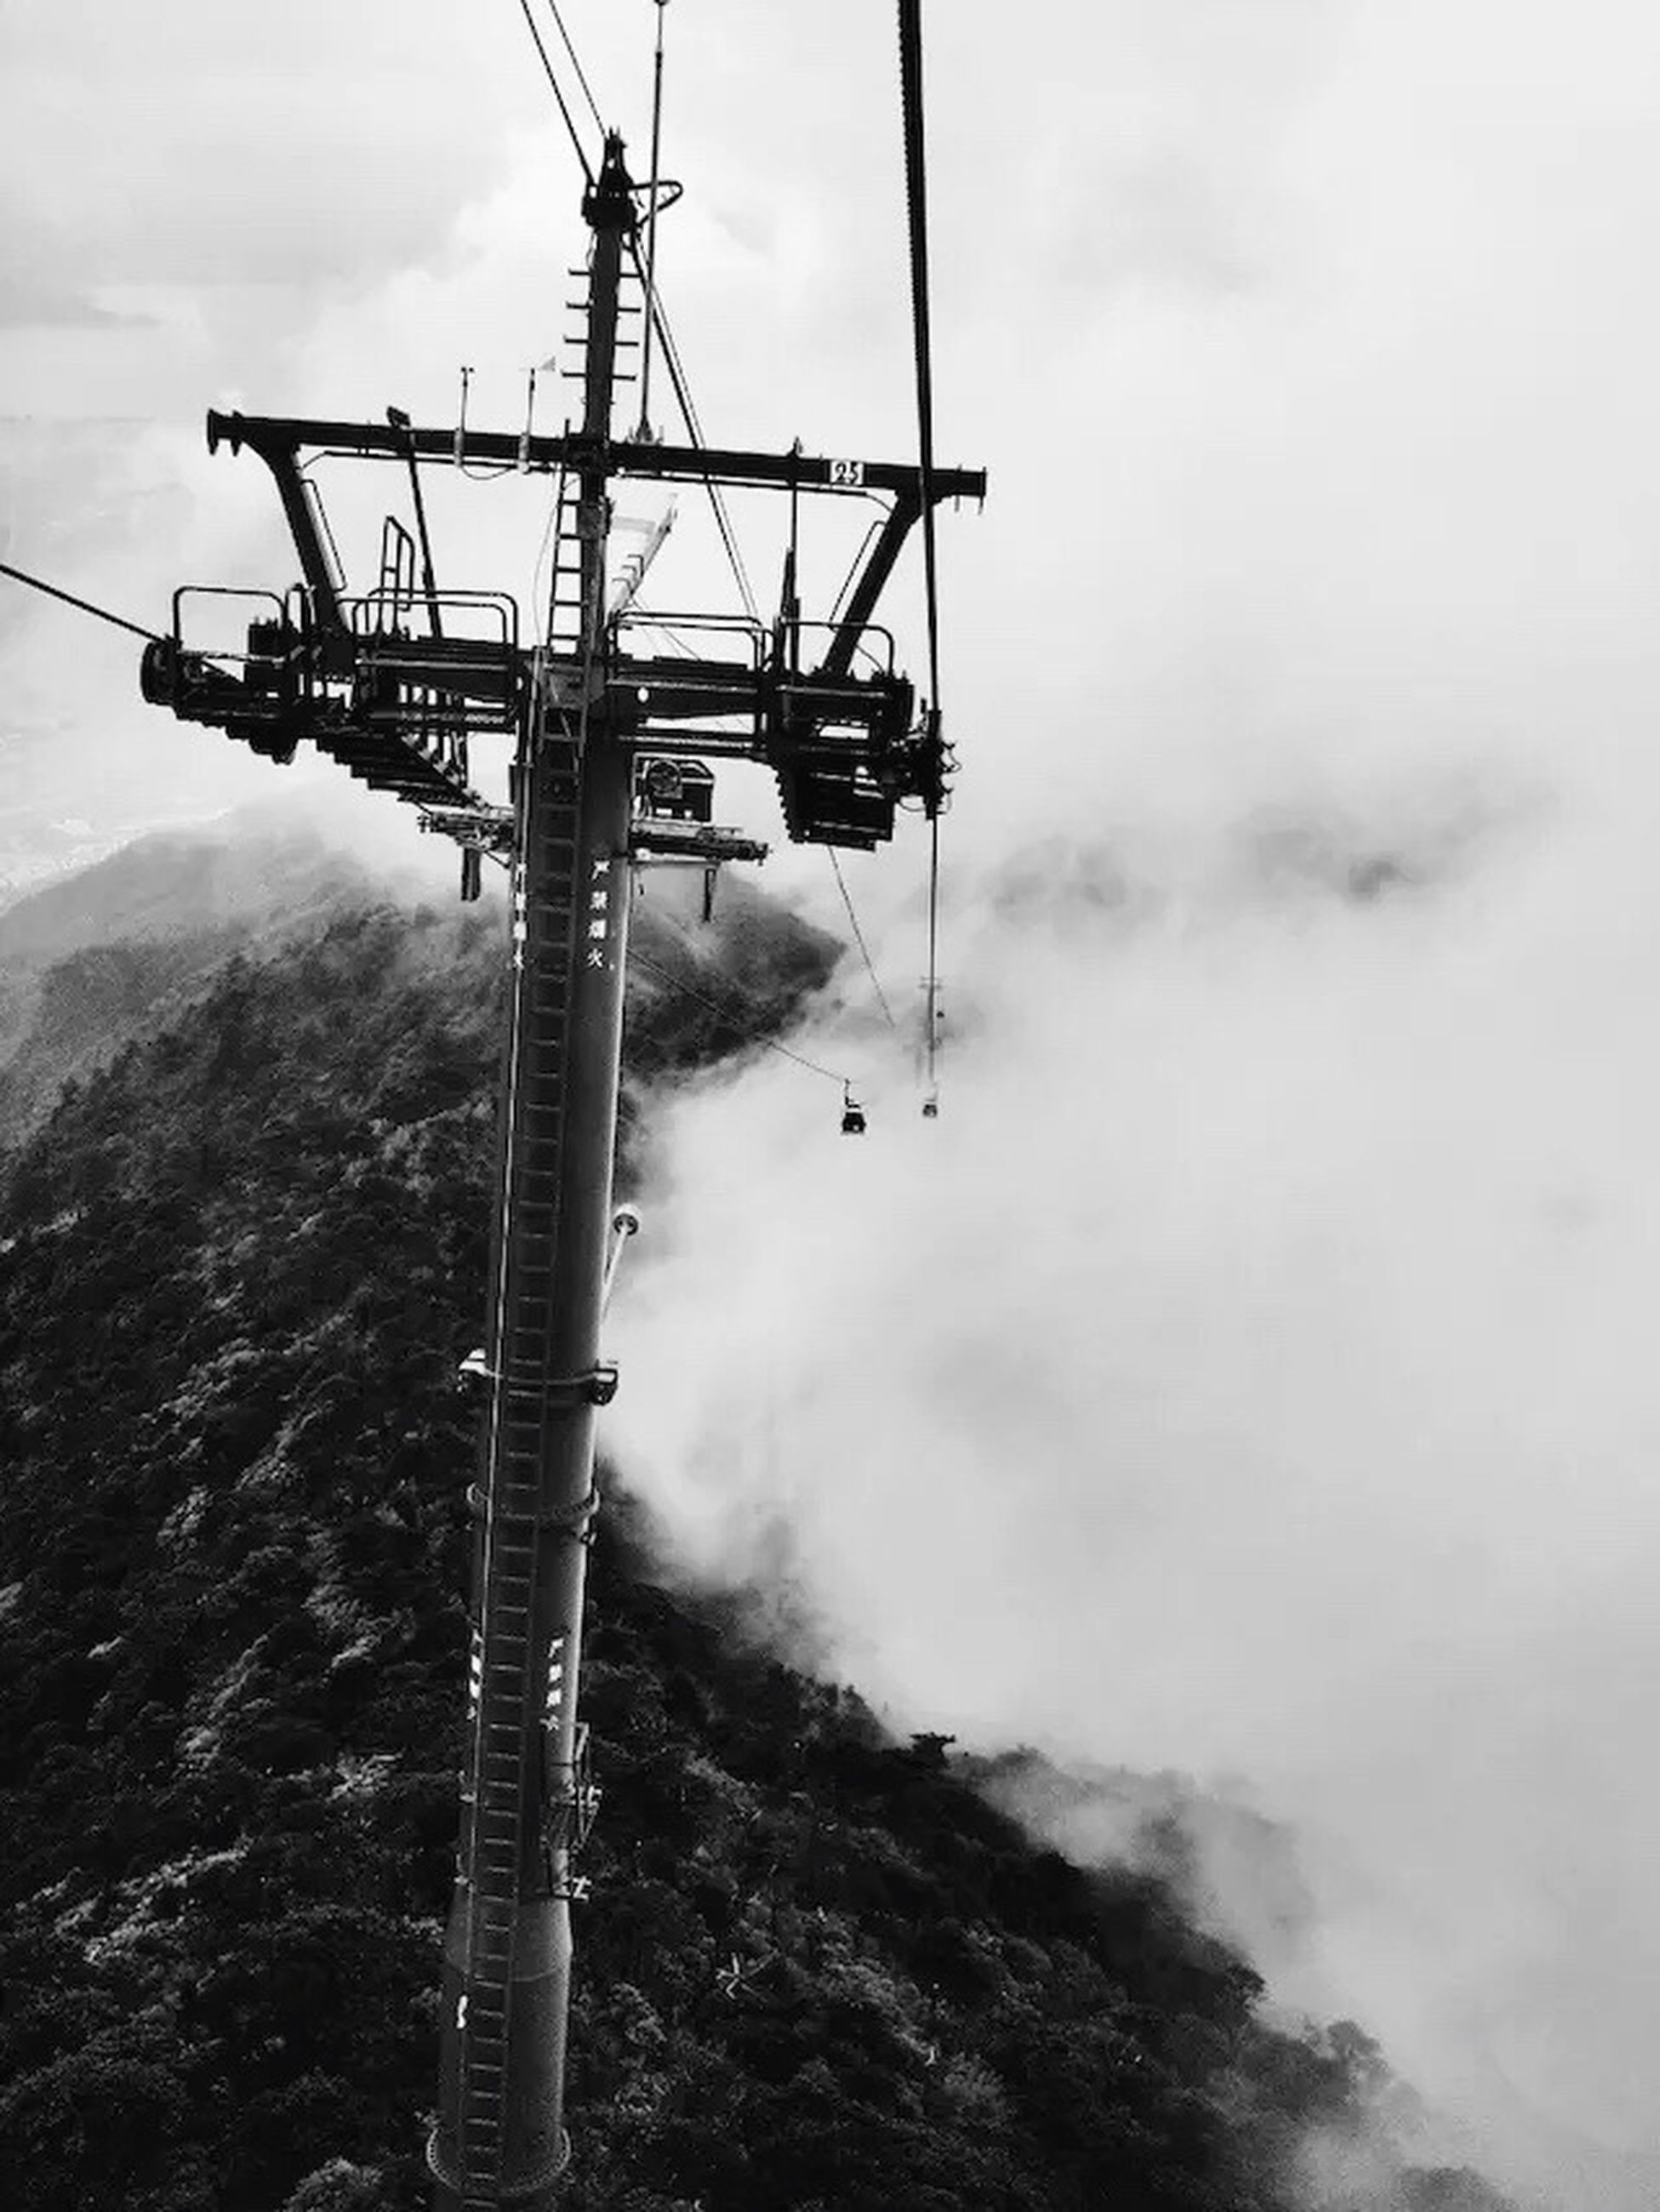 sky, cloud - sky, cloudy, weather, fuel and power generation, electricity, electricity pylon, transportation, connection, low angle view, power line, nature, overhead cable car, mountain, technology, tranquility, day, tranquil scene, mode of transport, overcast